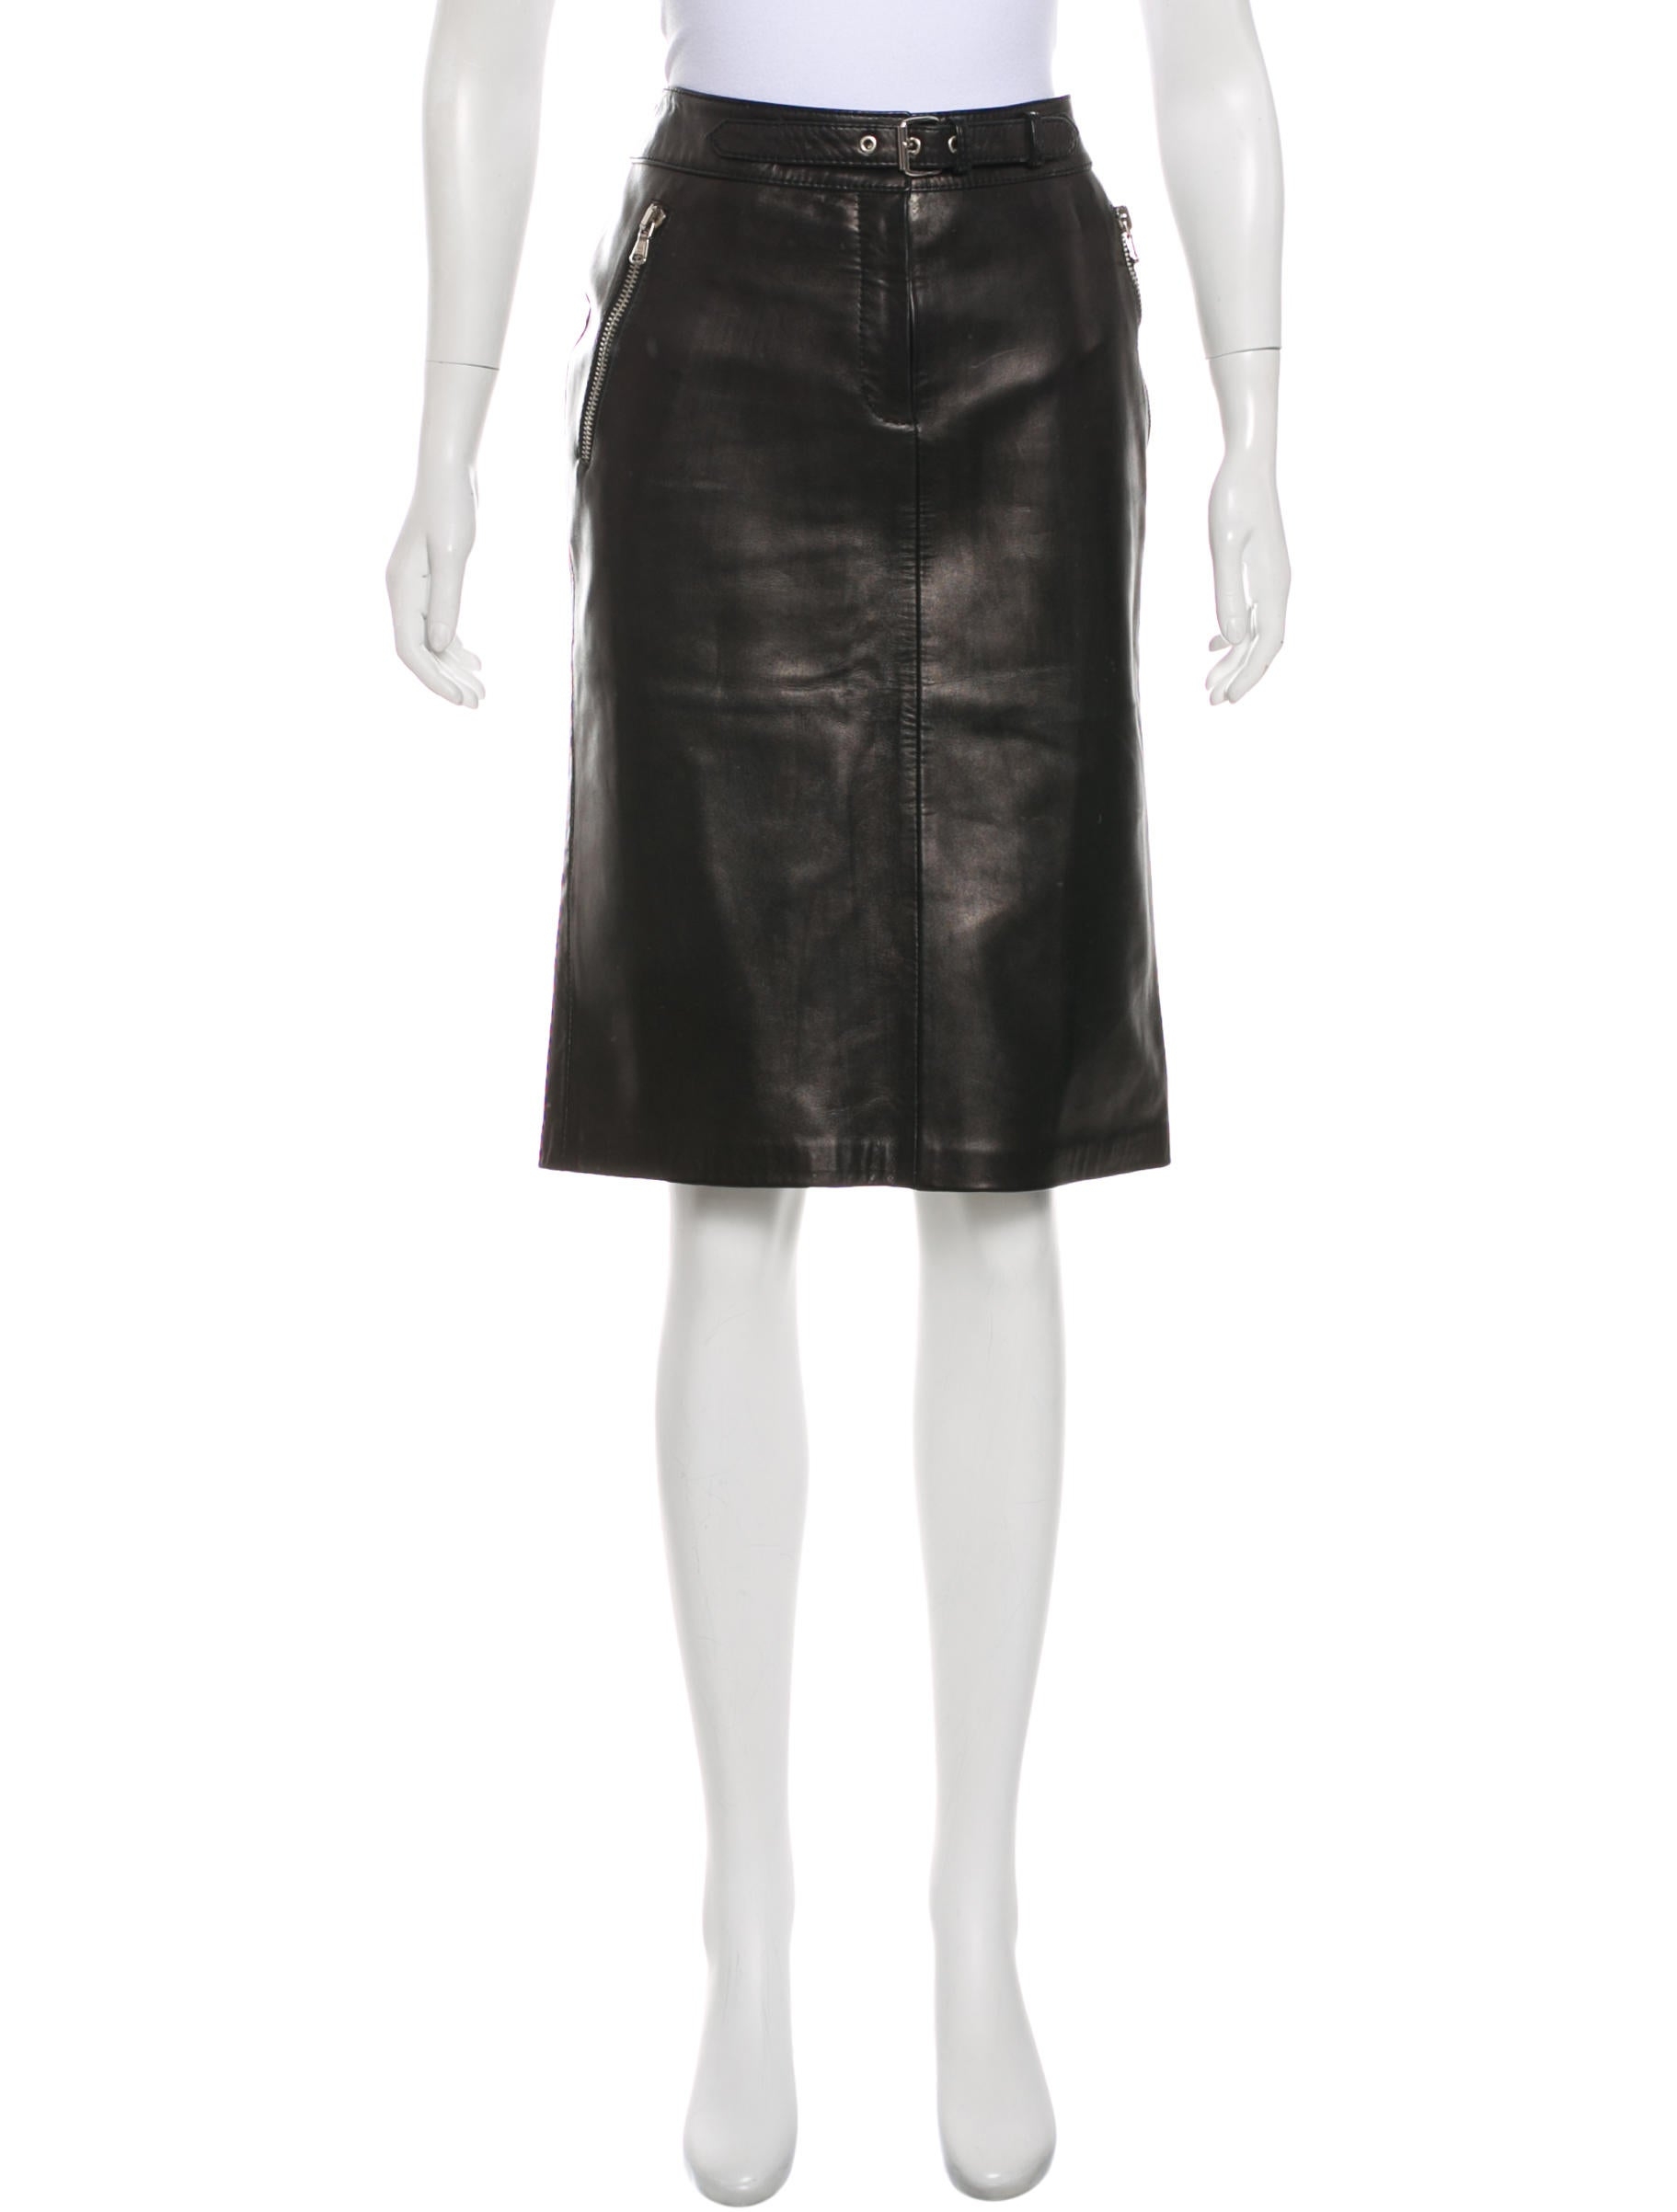 Professional Sale Online Discount Shopping Online Dolce & Gabbana Leather Knee-Length Skirt With Mastercard Cheap Price Very Cheap Cheap Online Lowest Price C8oKR2n3Qp